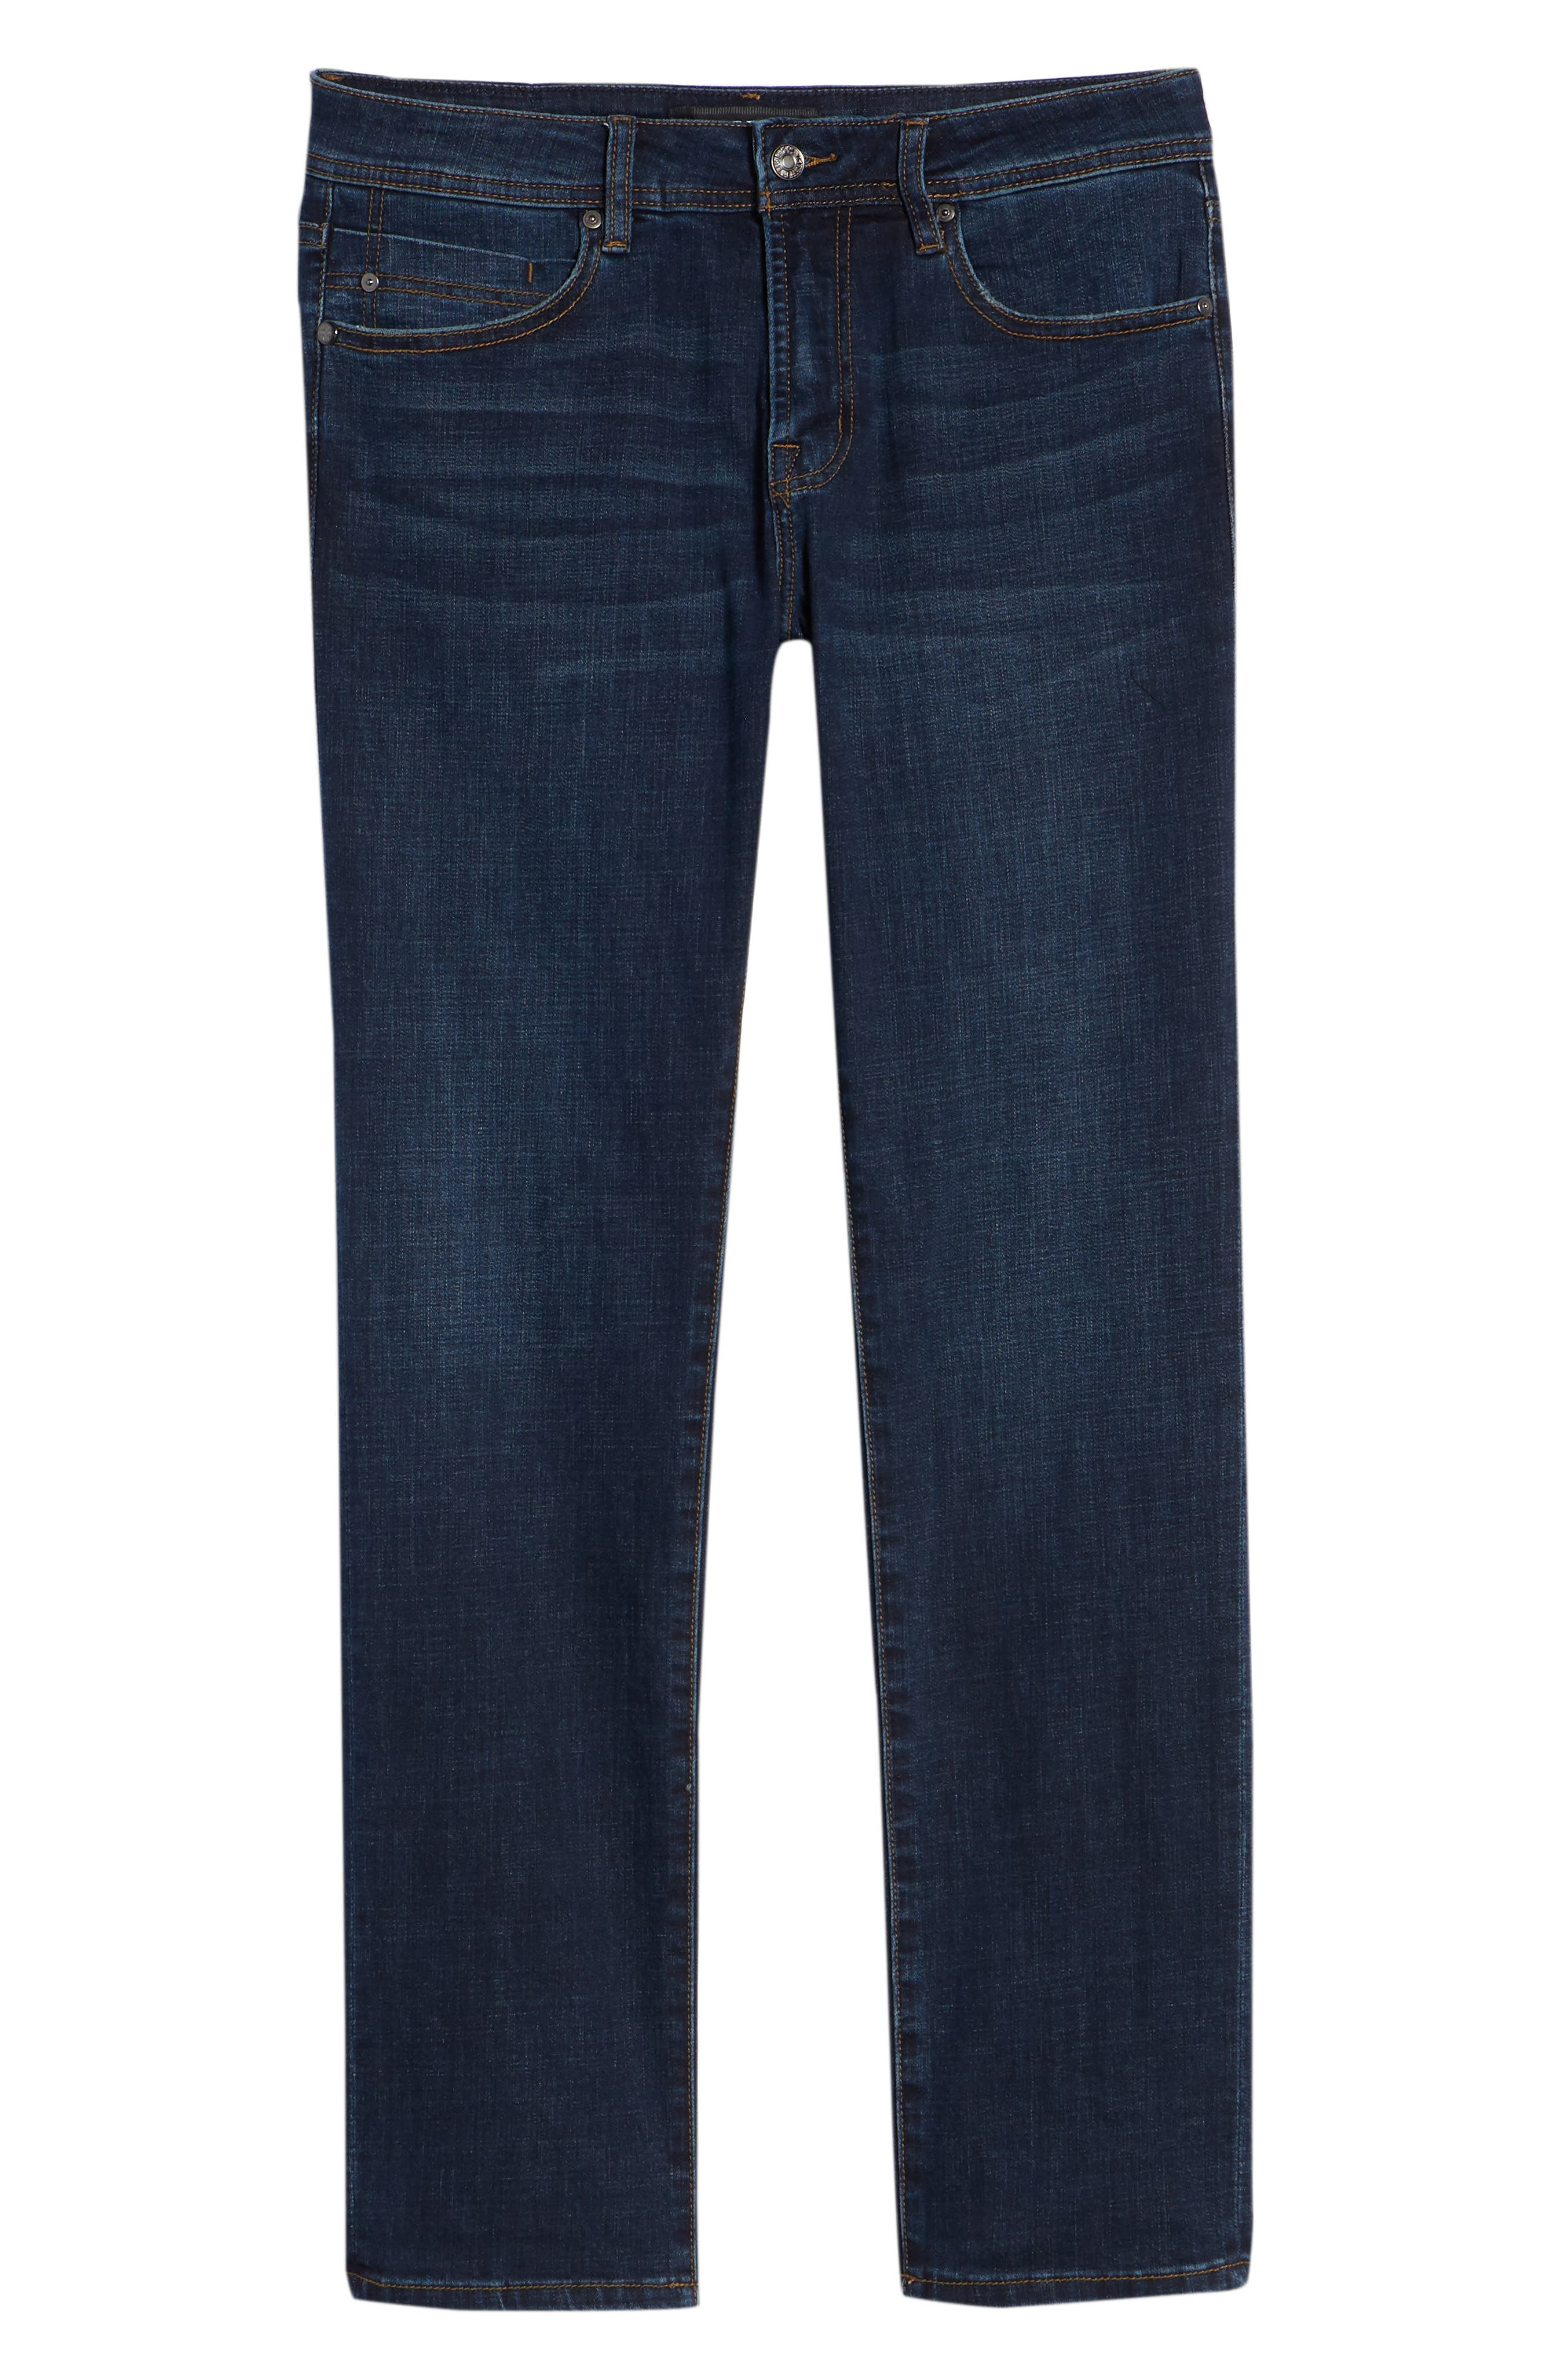 Relaxed Fit Jeans,                             Alternate thumbnail 6, color,                             Navajo Dark